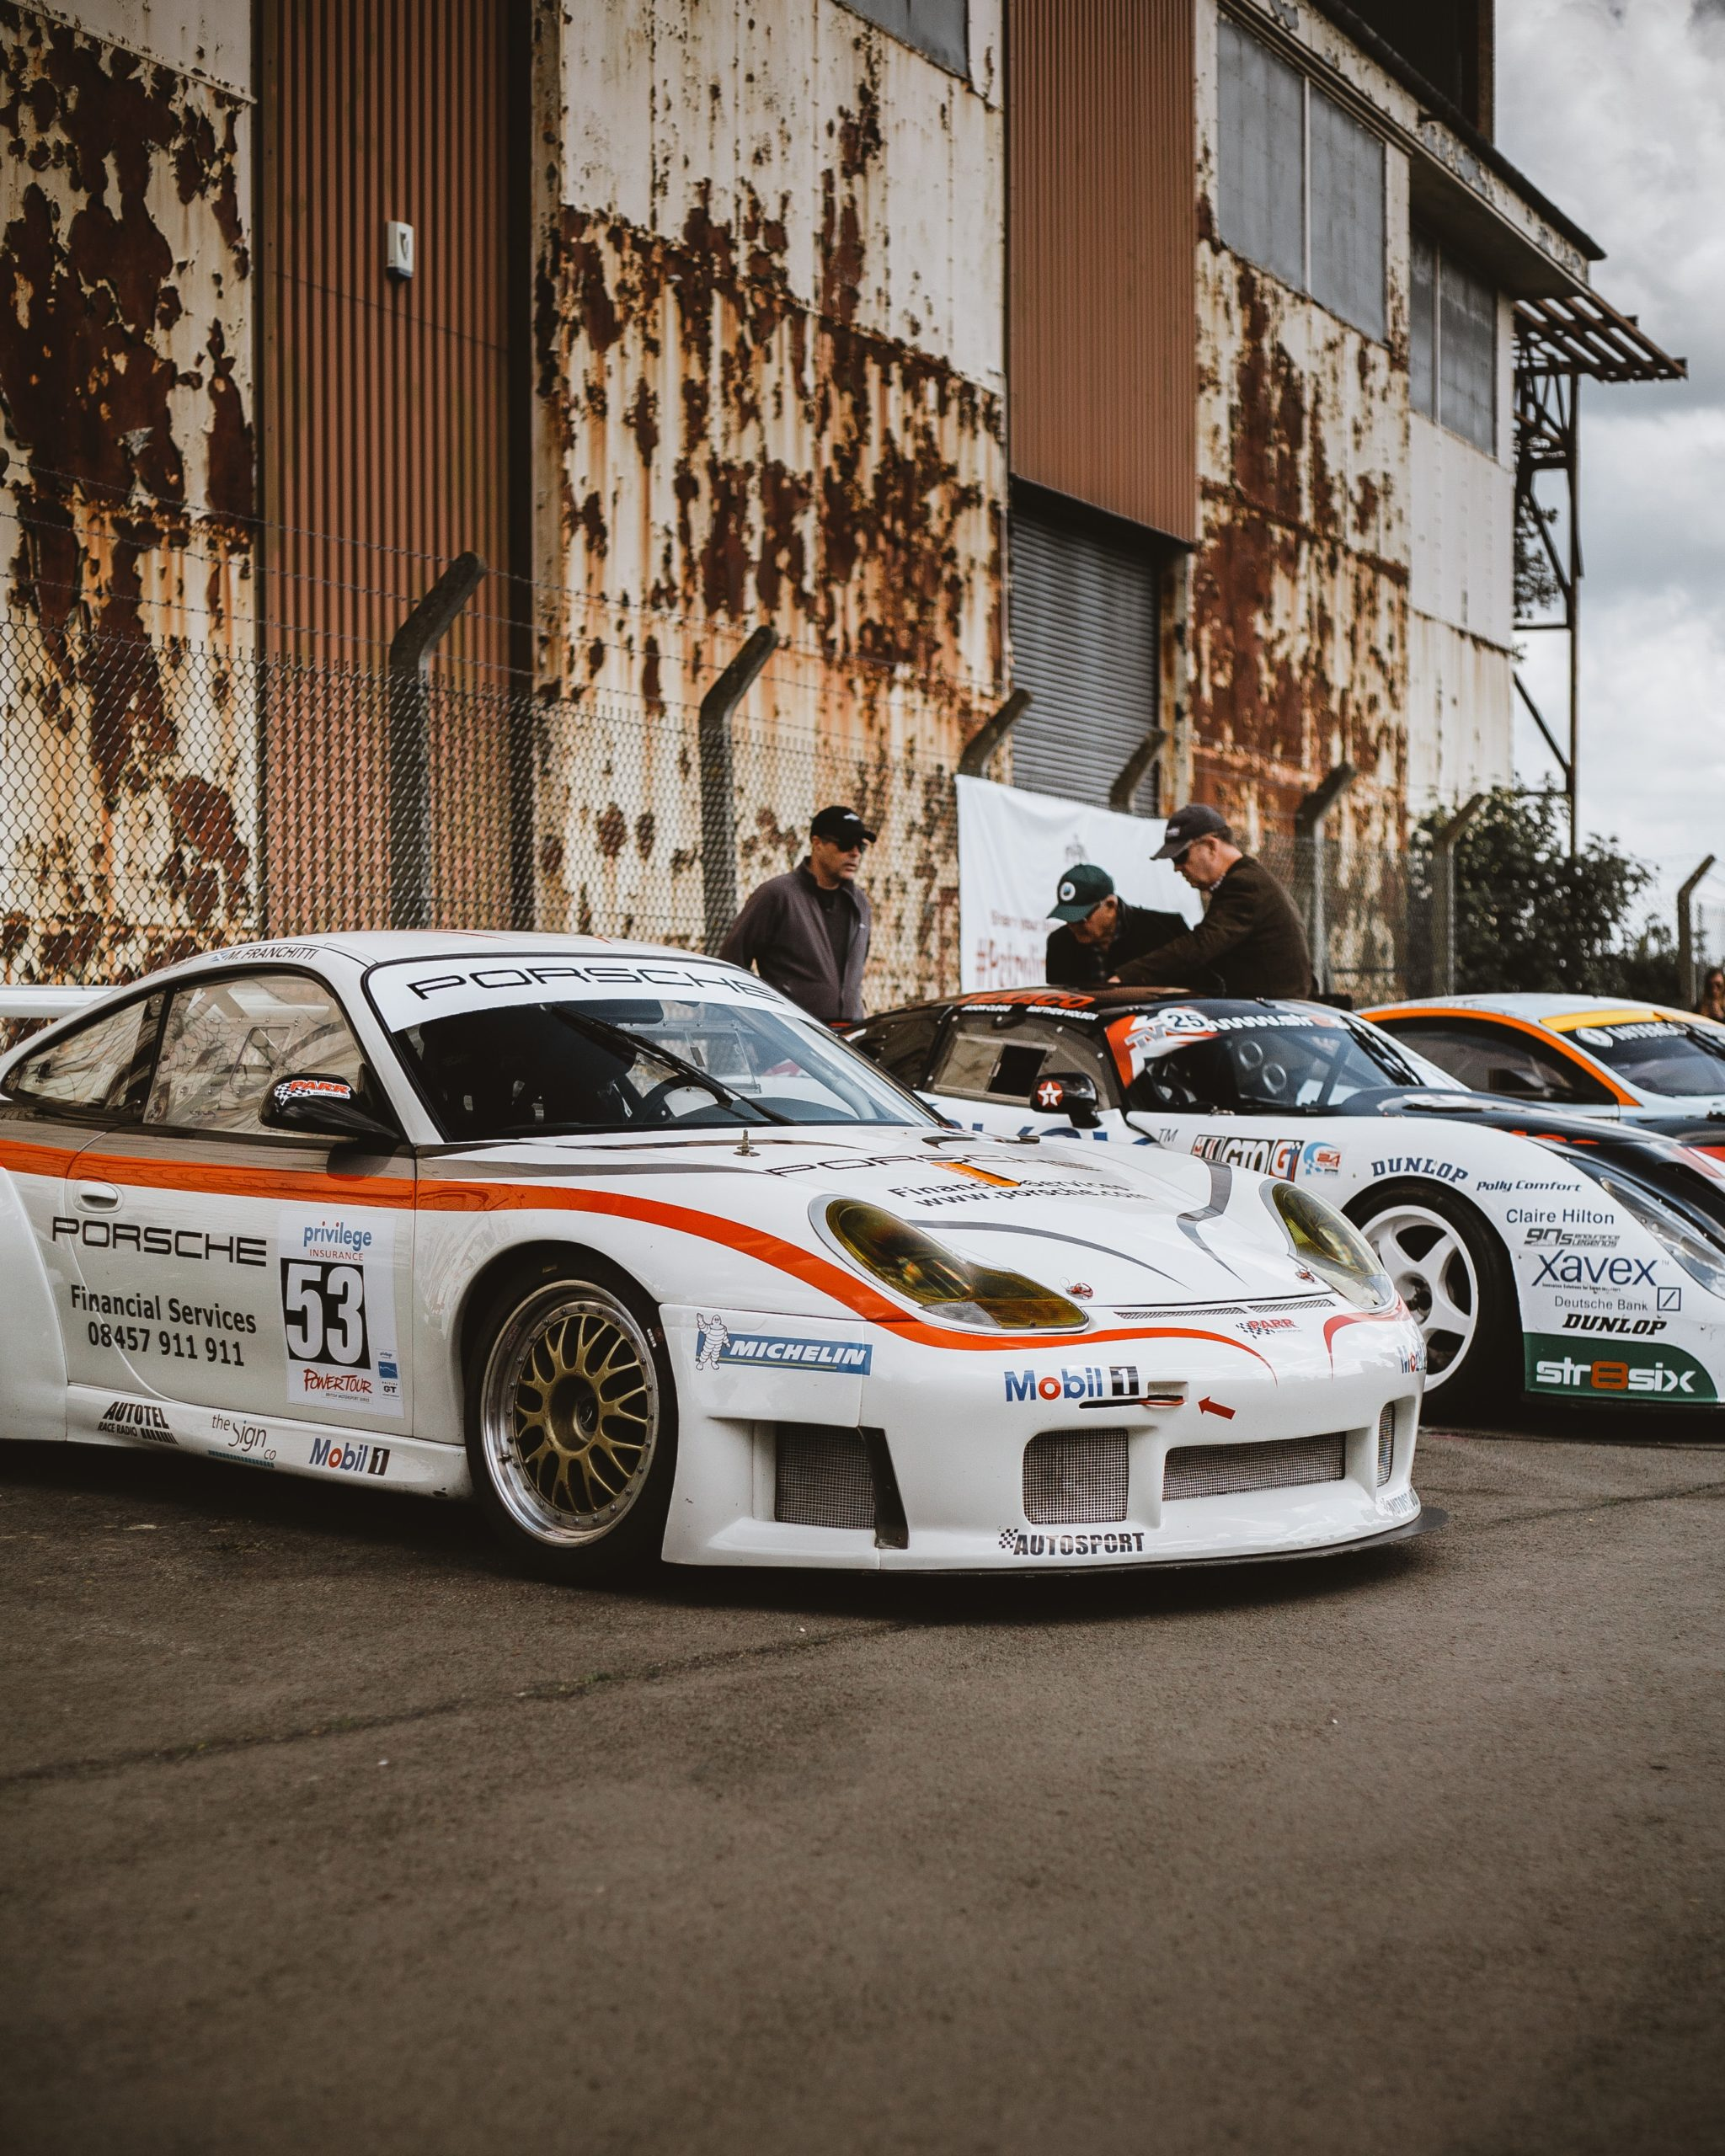 Parked Race Cars